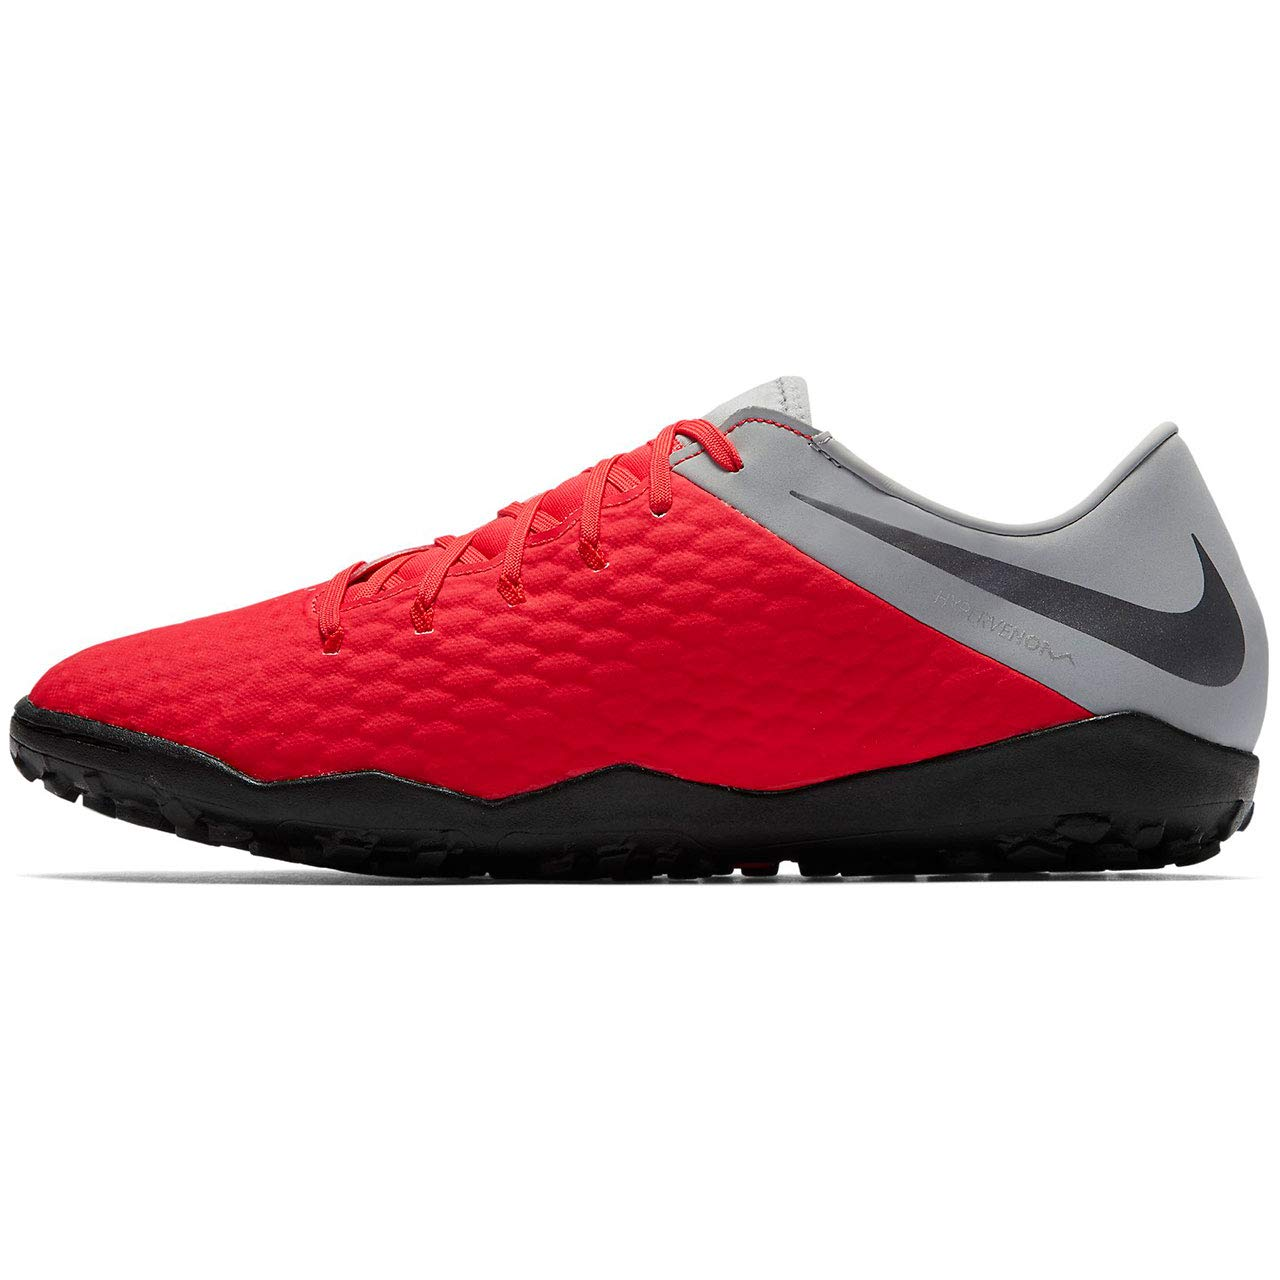 0d5fc8d0956 Amazon.com  Nike Hypervenom 3 Academy TF-Crimson Grey 12  Clothing